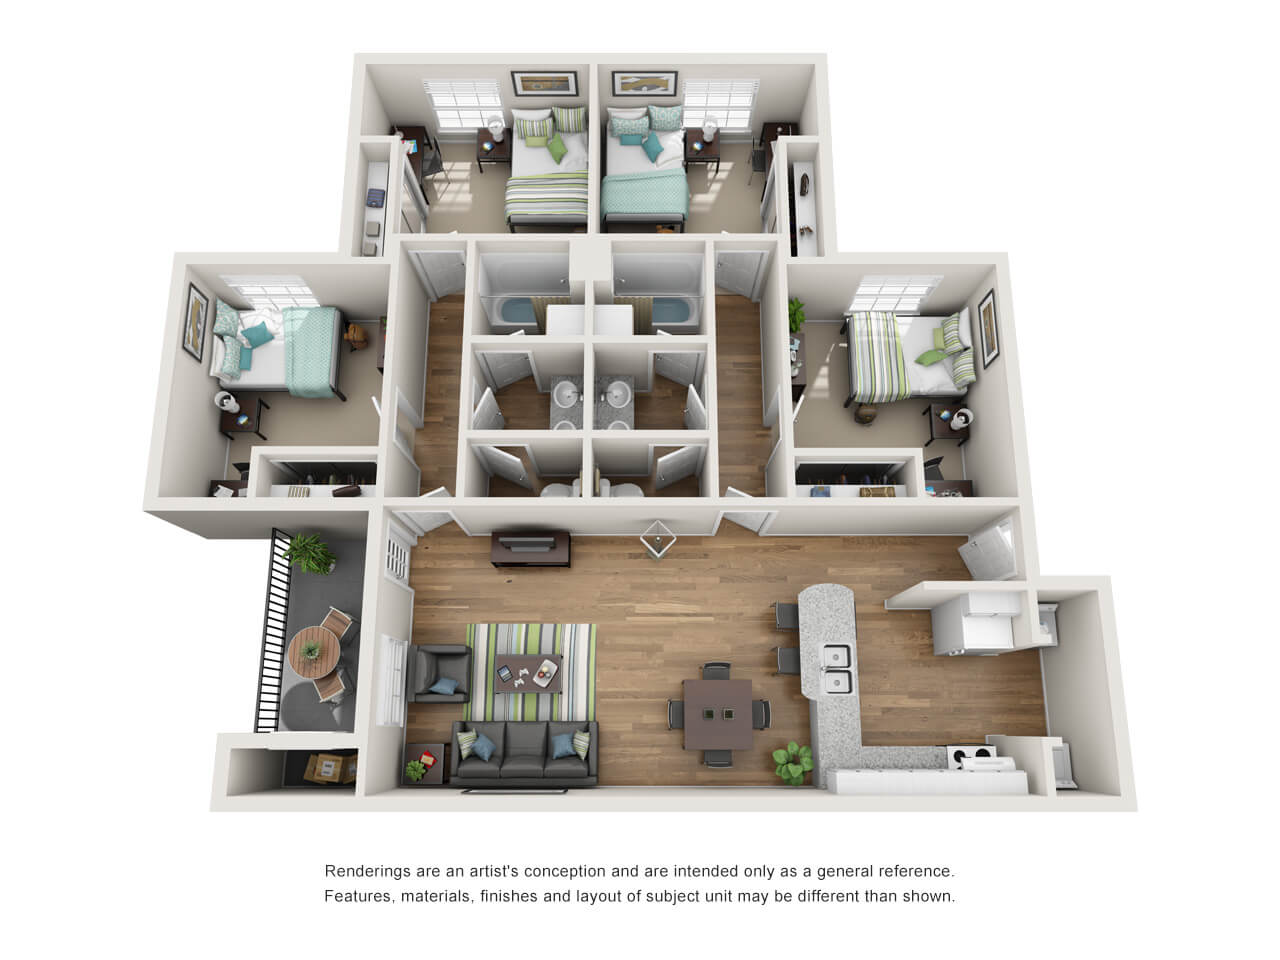 Floor plan of a four-bedroom student apartment